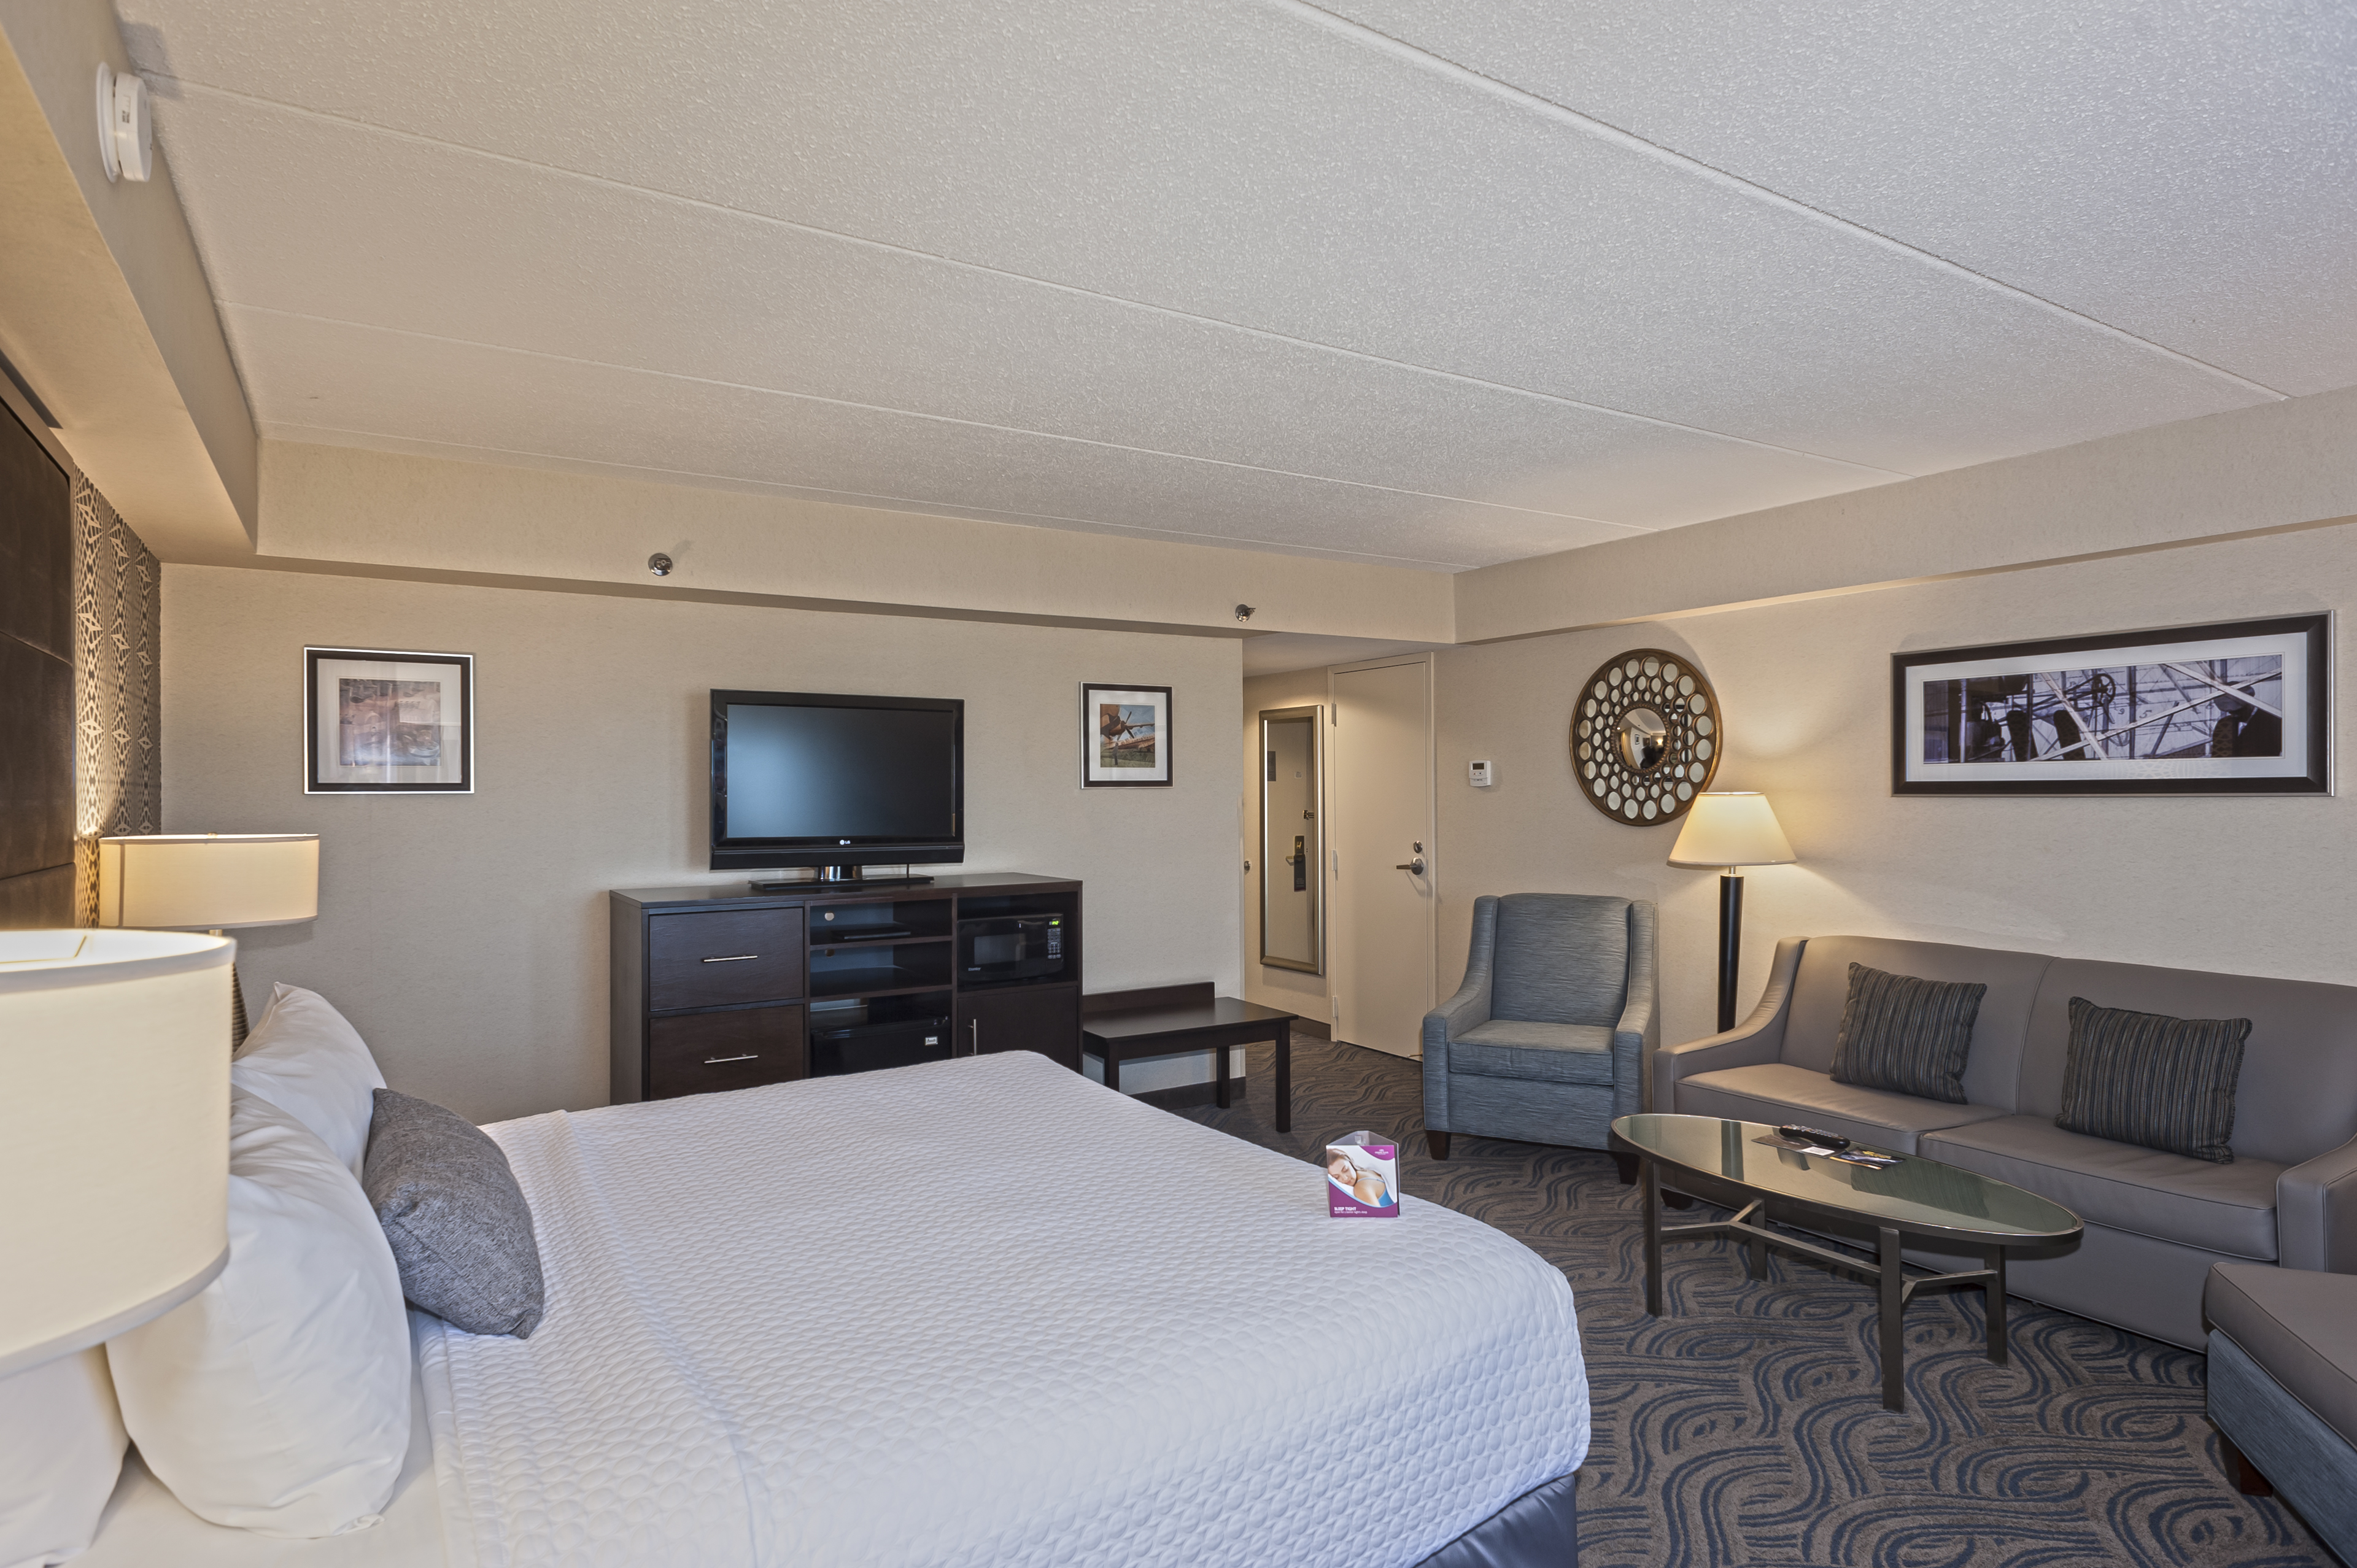 mn south in staybridge us arpt eagrc eagan stay hotel hotels extended room en themed minnesota area rooms mall hoteldetail suites